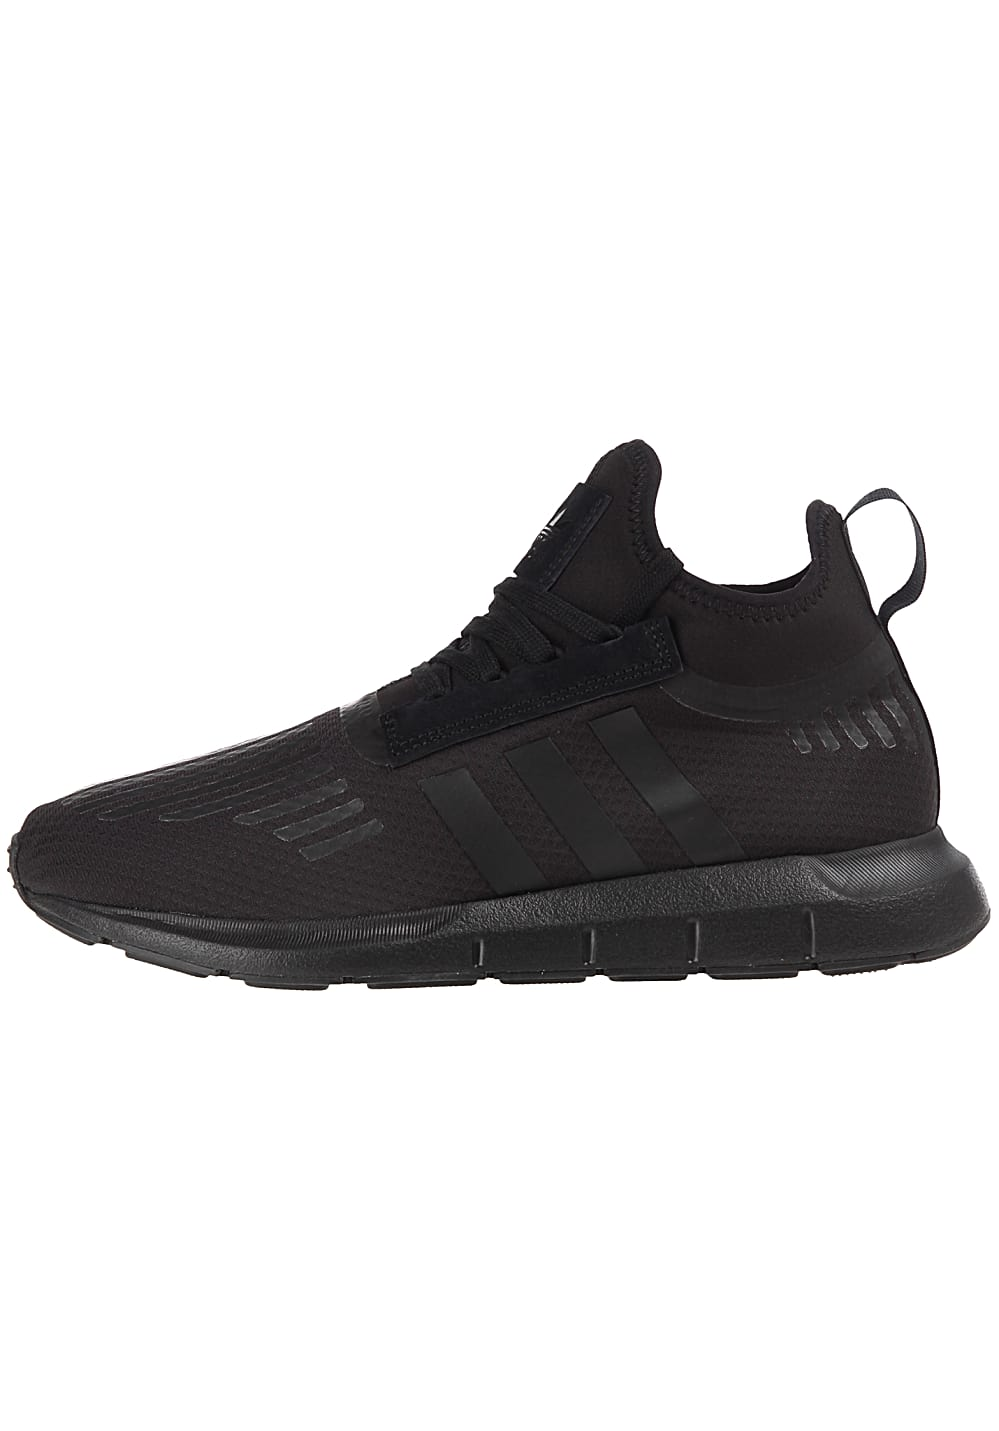 ADIDAS ORIGINALS Swift Run Barrier Sneakers Black